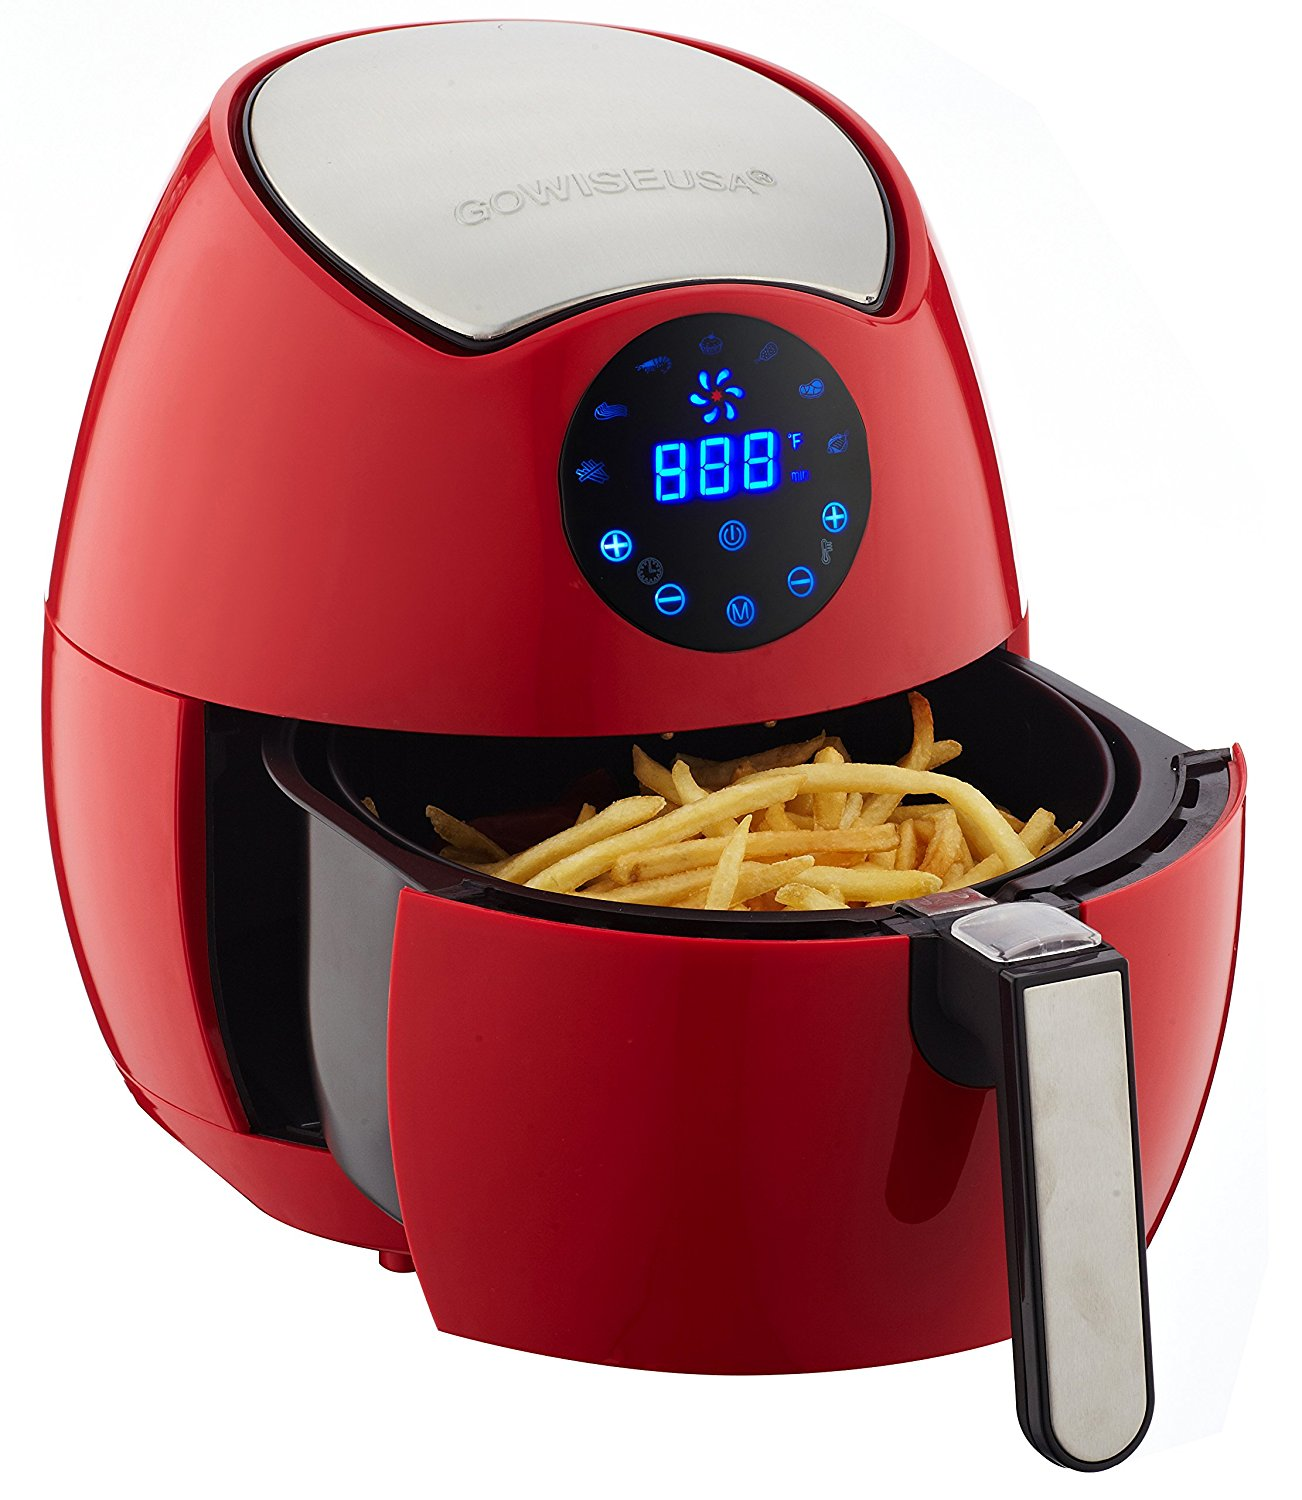 Gowise usa electric digital air fryer kitchen things for Gowise usa